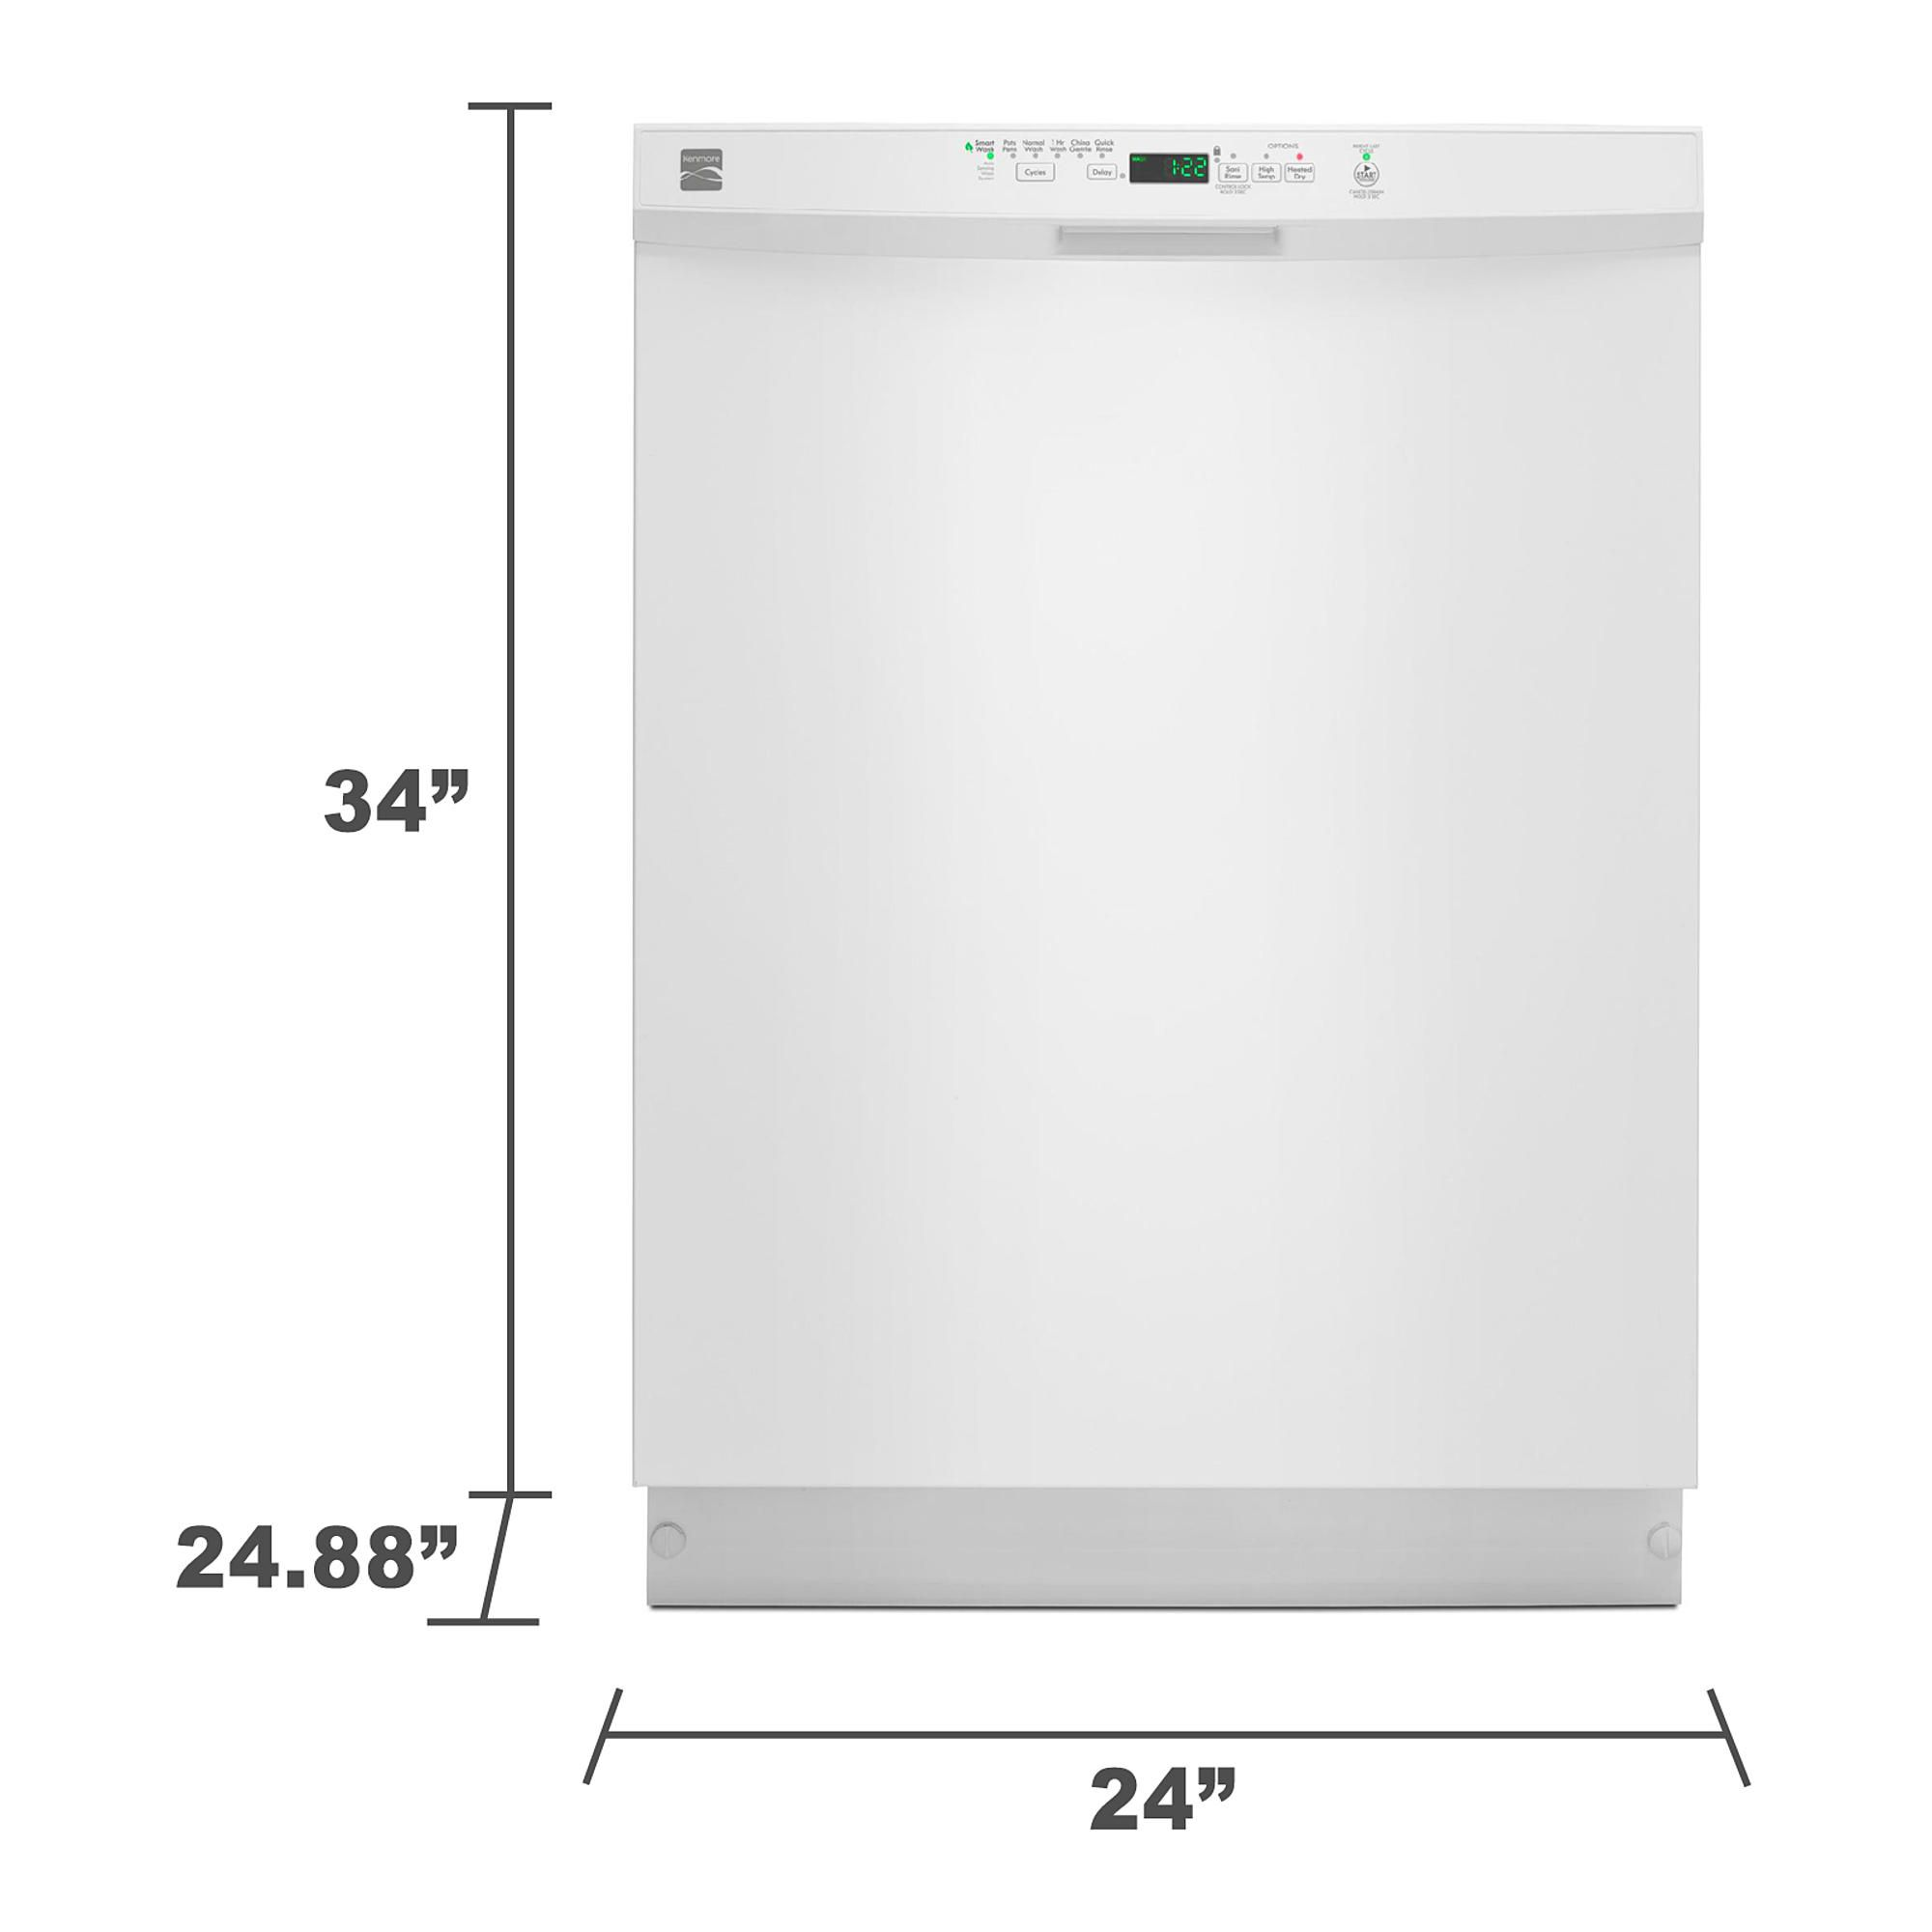 Kenmore 13222 Dishwasher With Steel Tub Power Wave Spray Arm